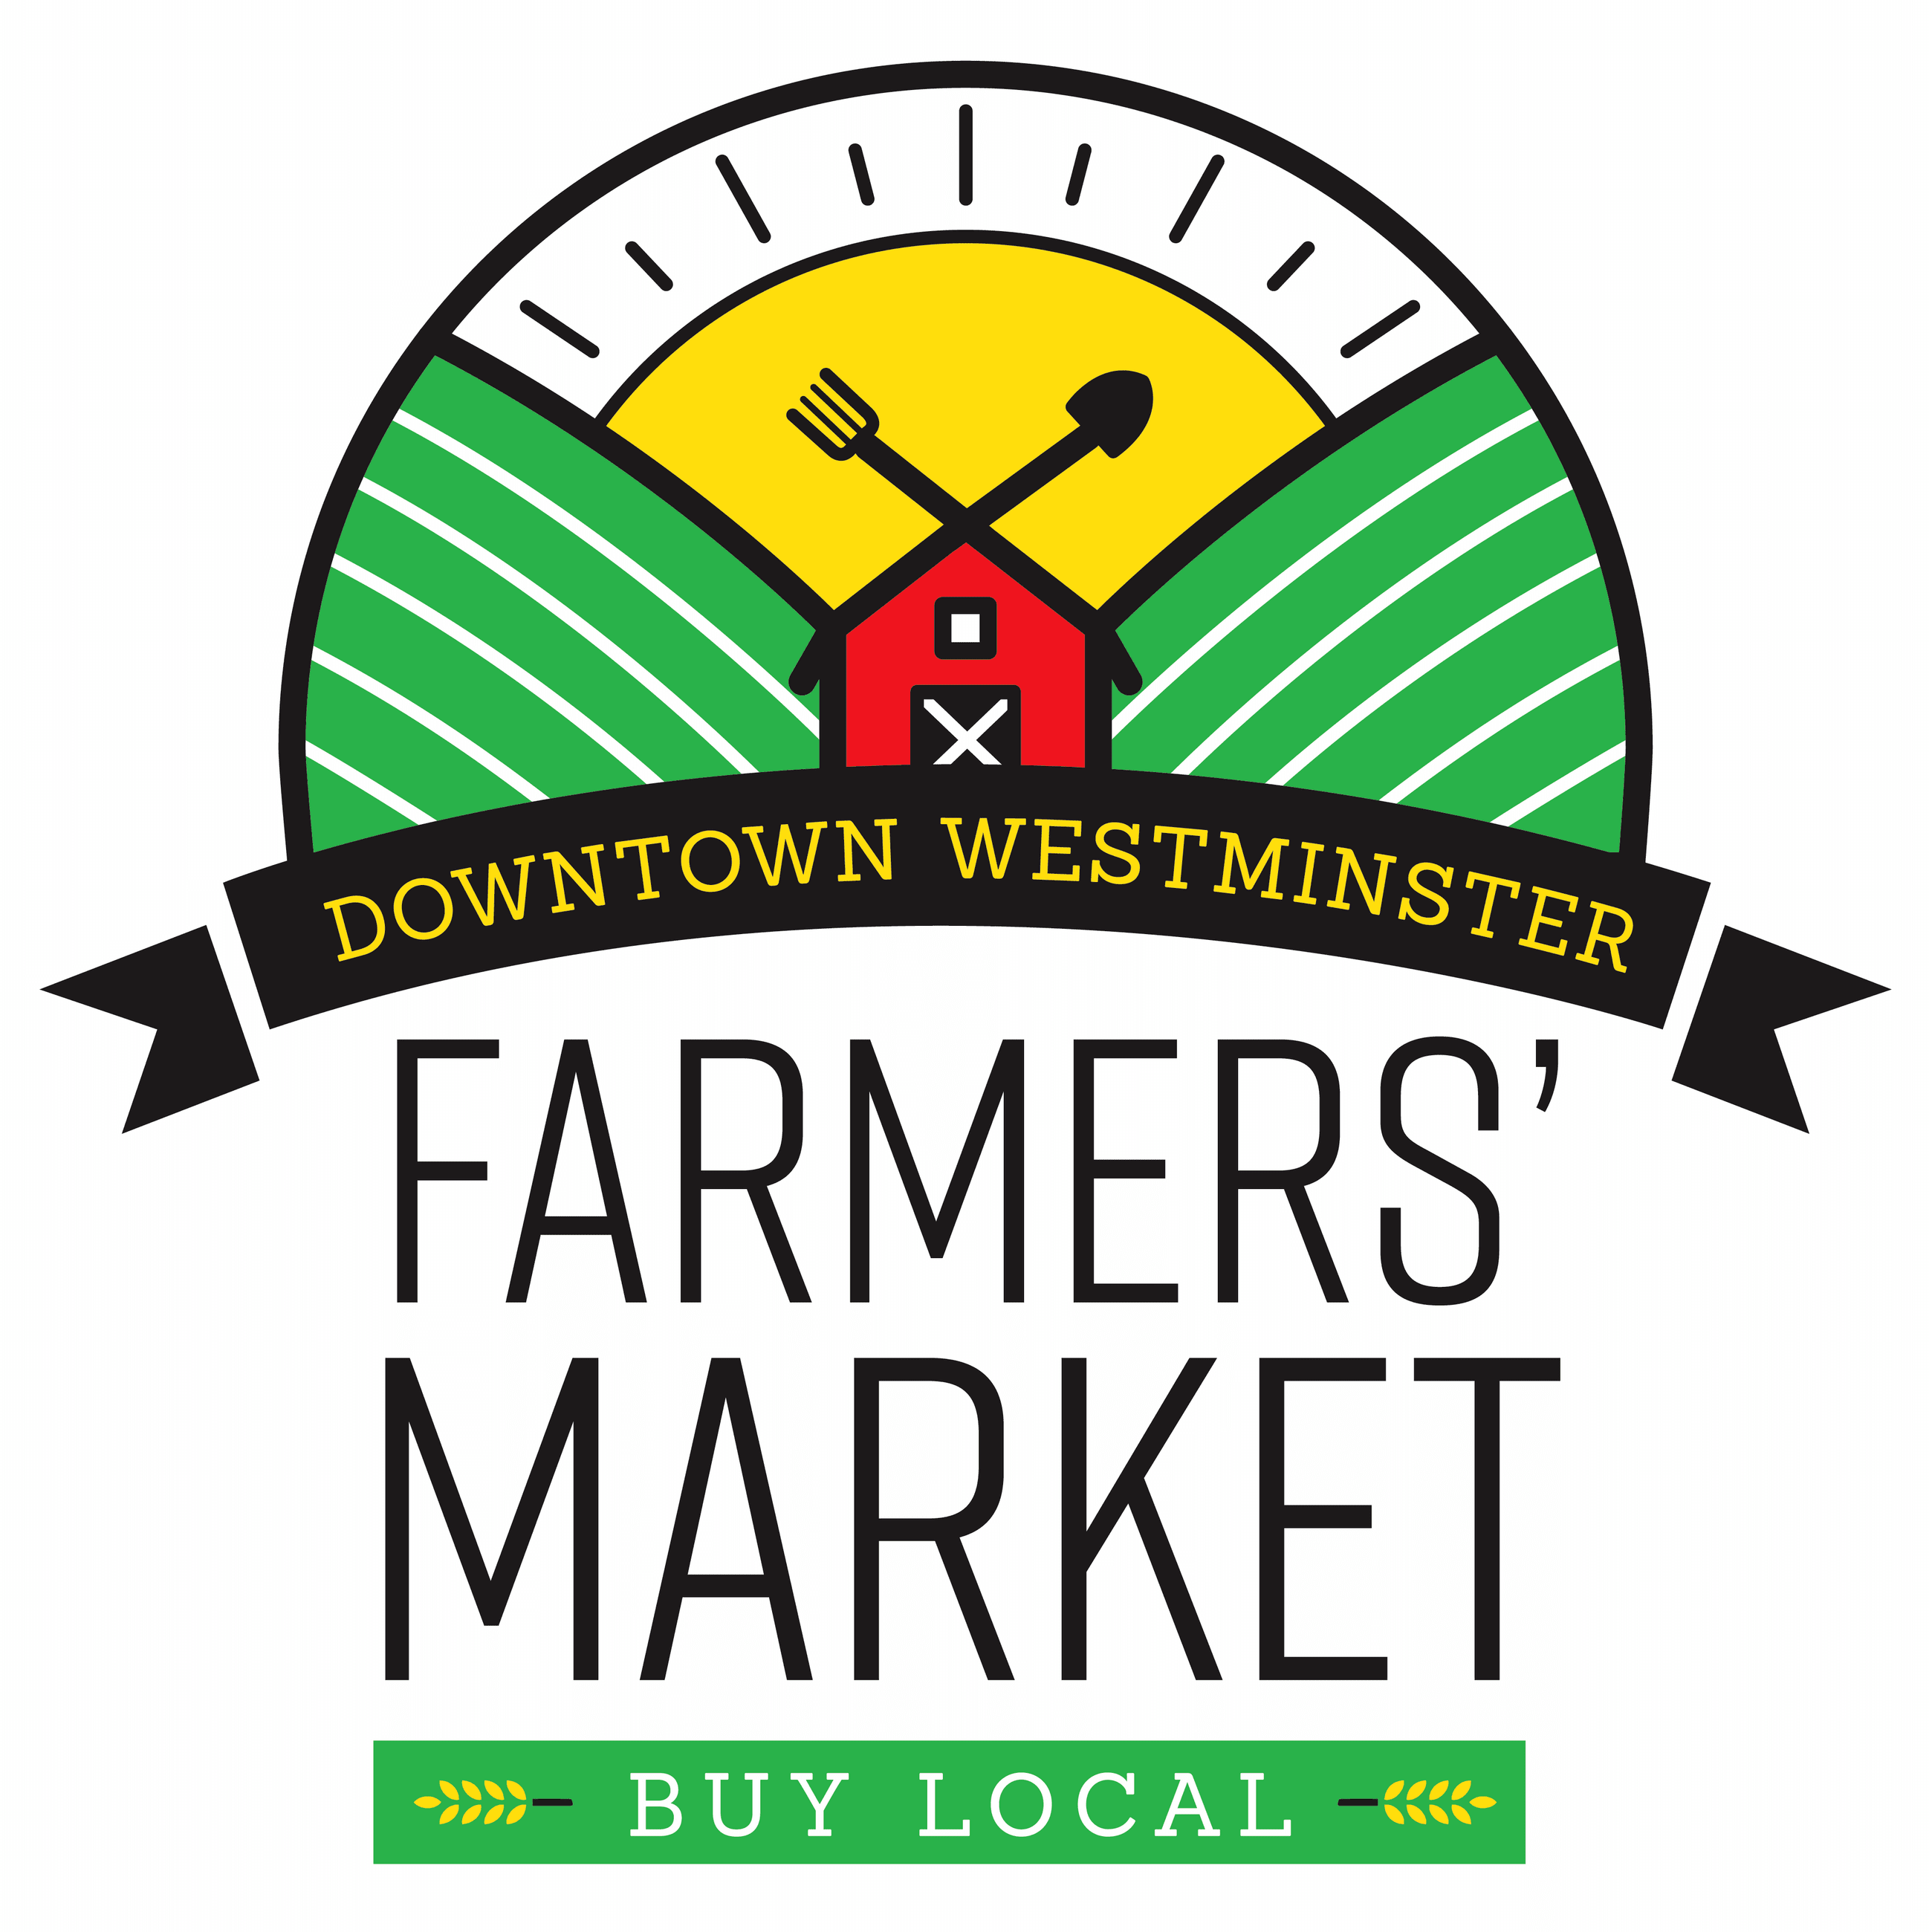 Downtown Westminster Farmers' Market